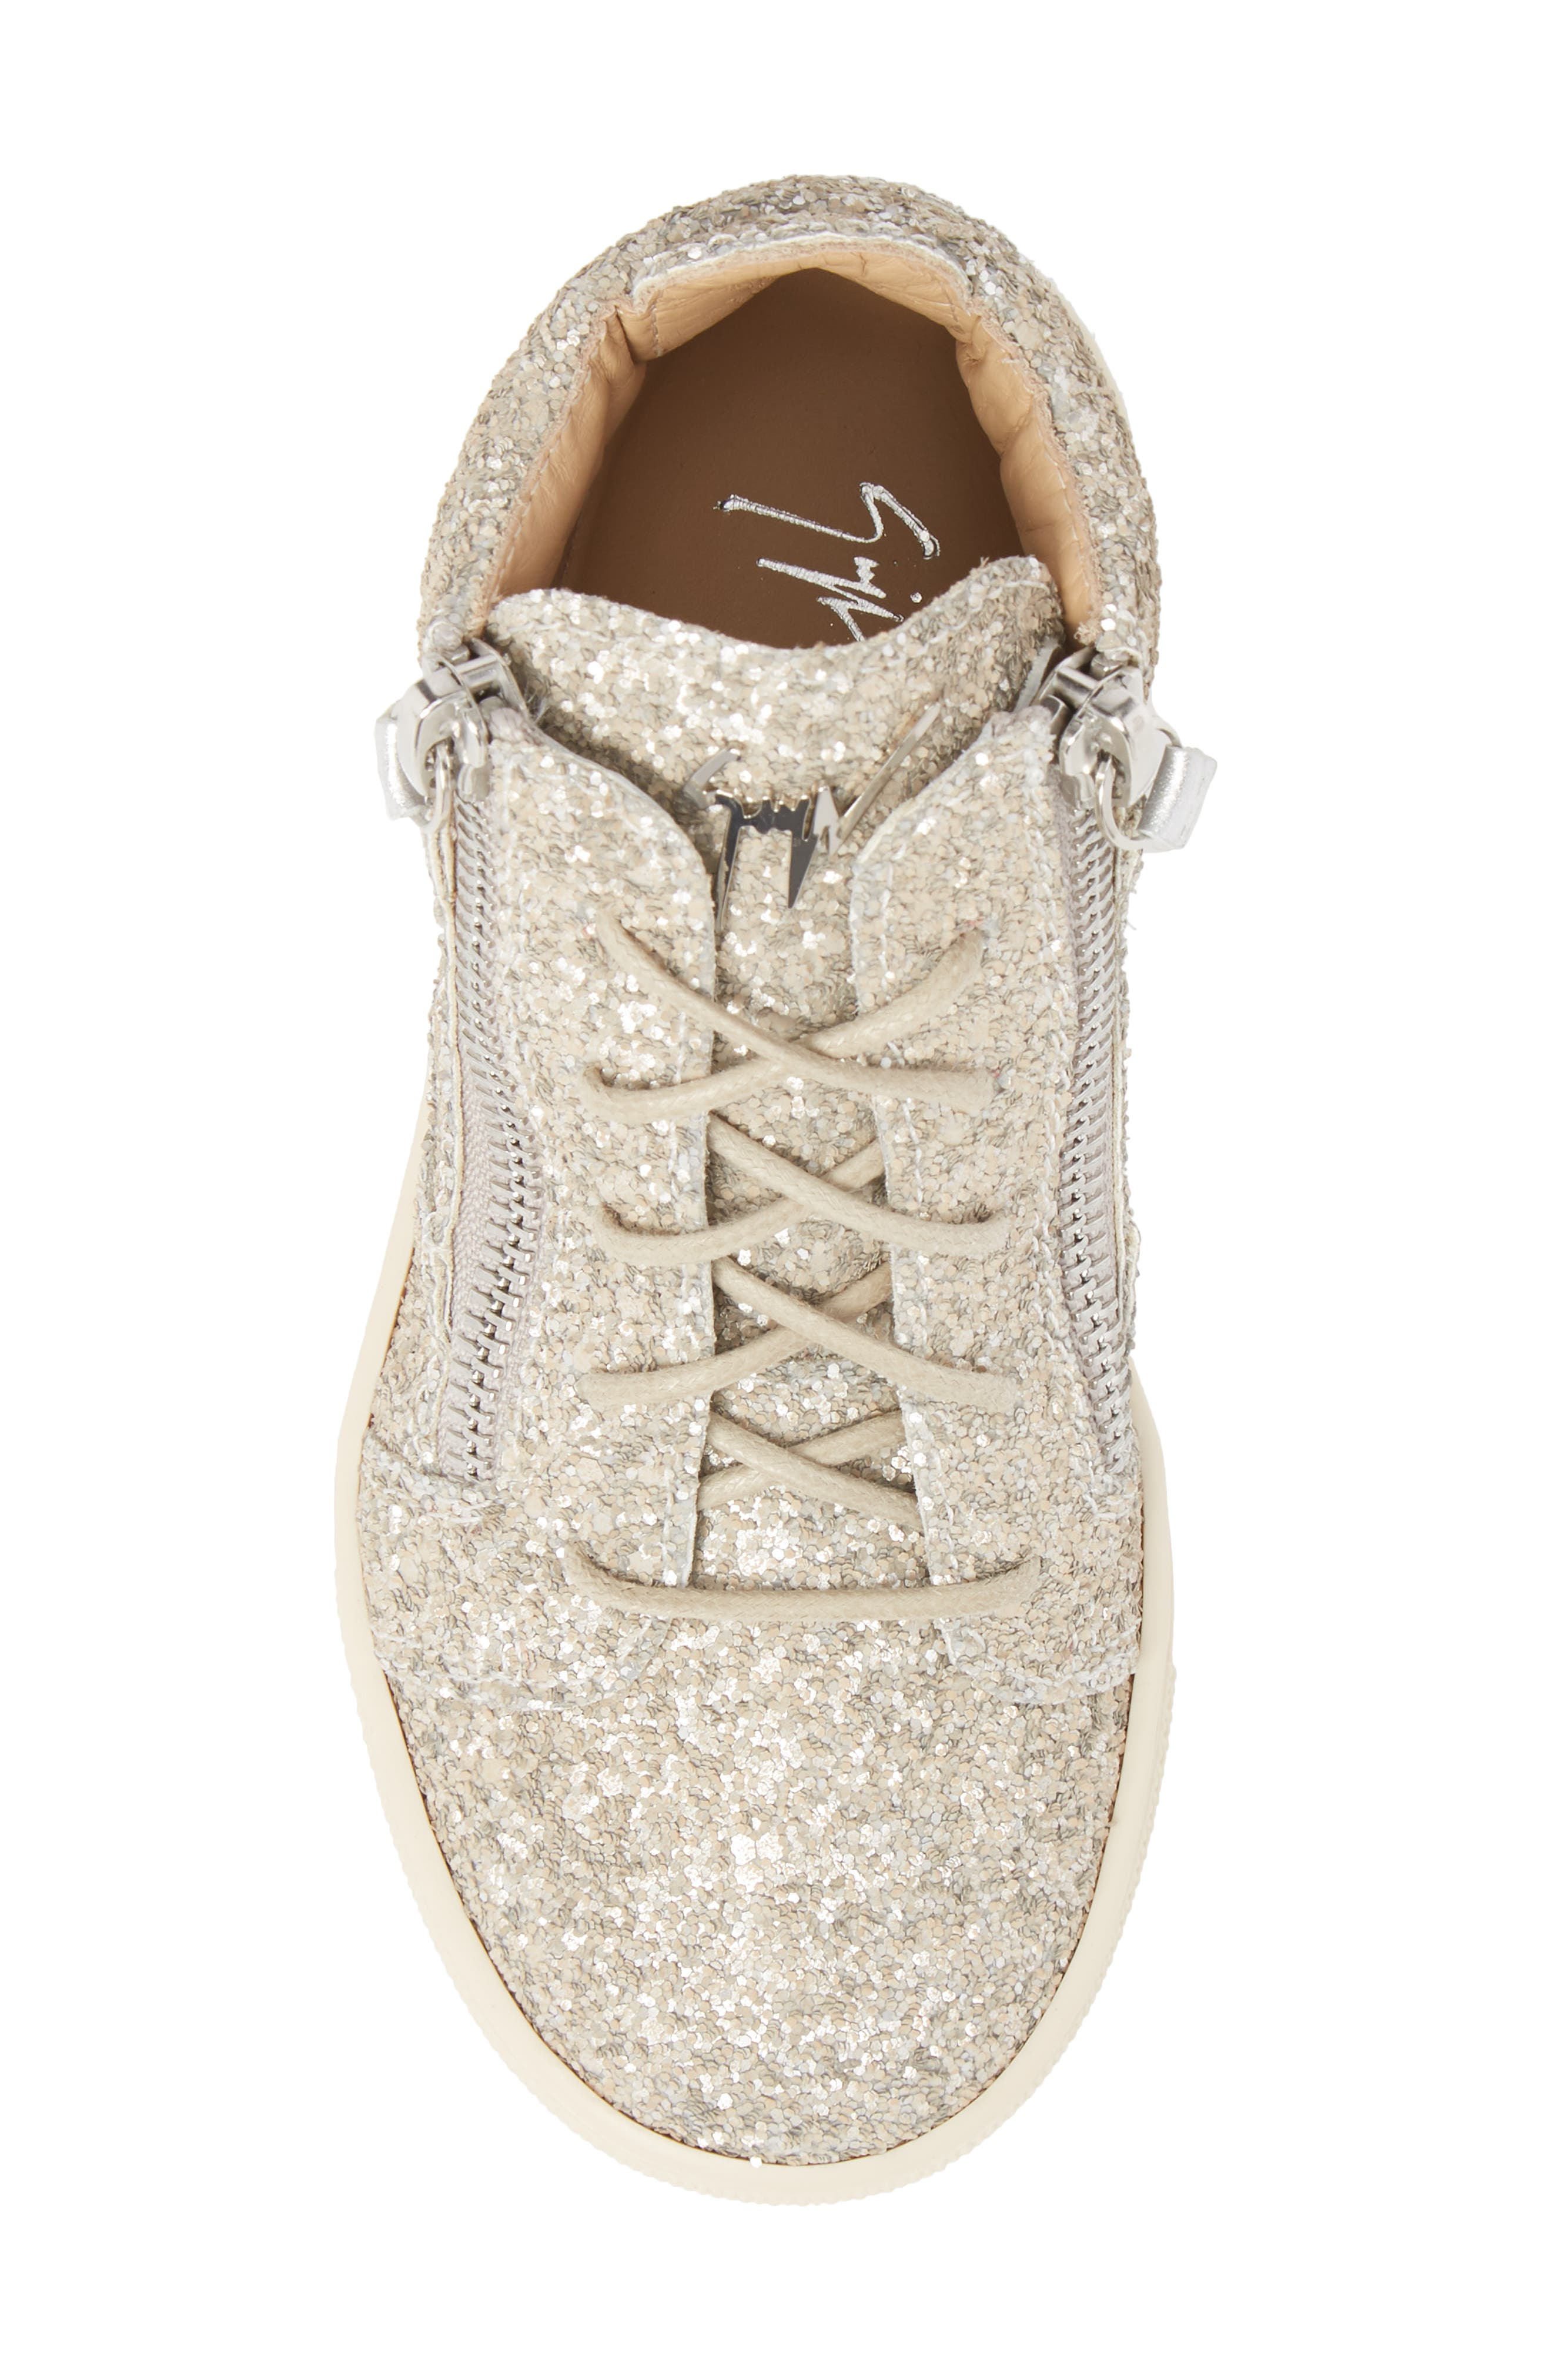 Natalie High Top Sneaker,                             Alternate thumbnail 5, color,                             Silver Glitter